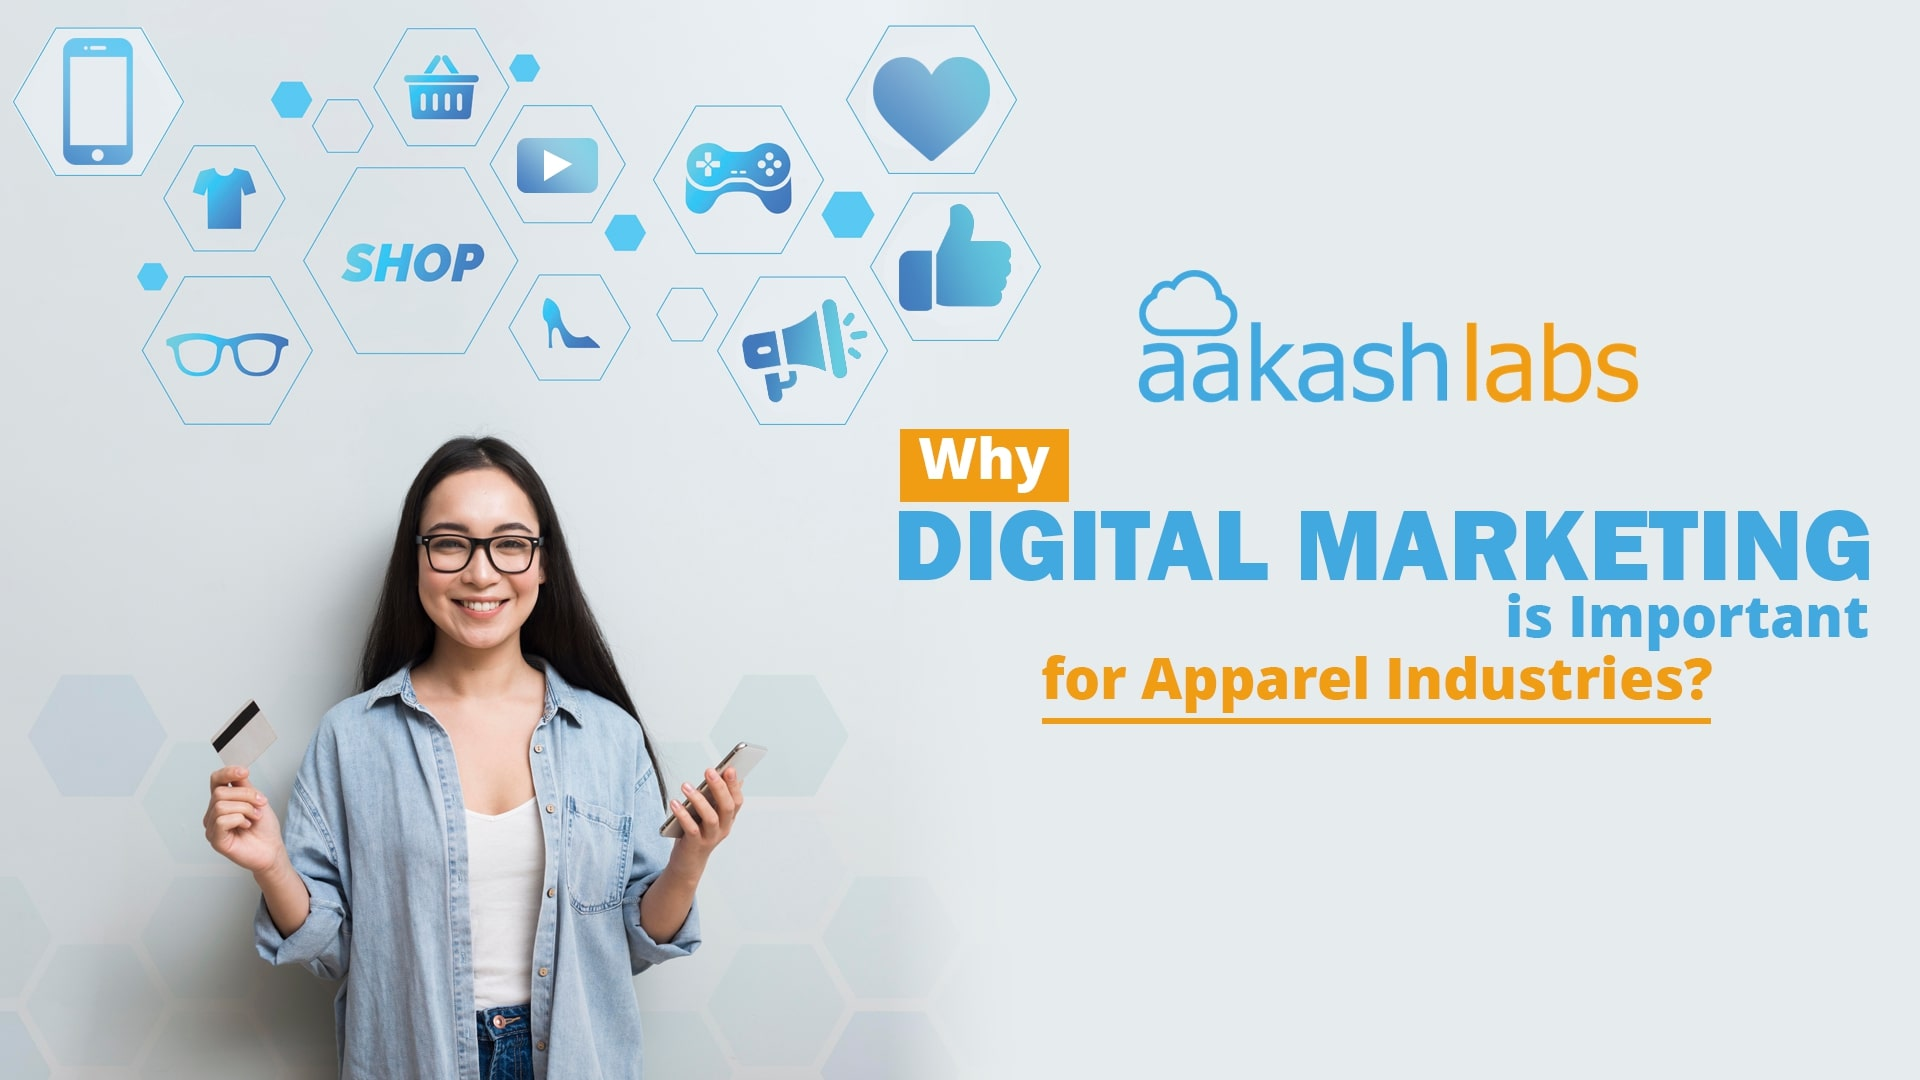 Why Digital Marketing is Important for Apparel Industries?